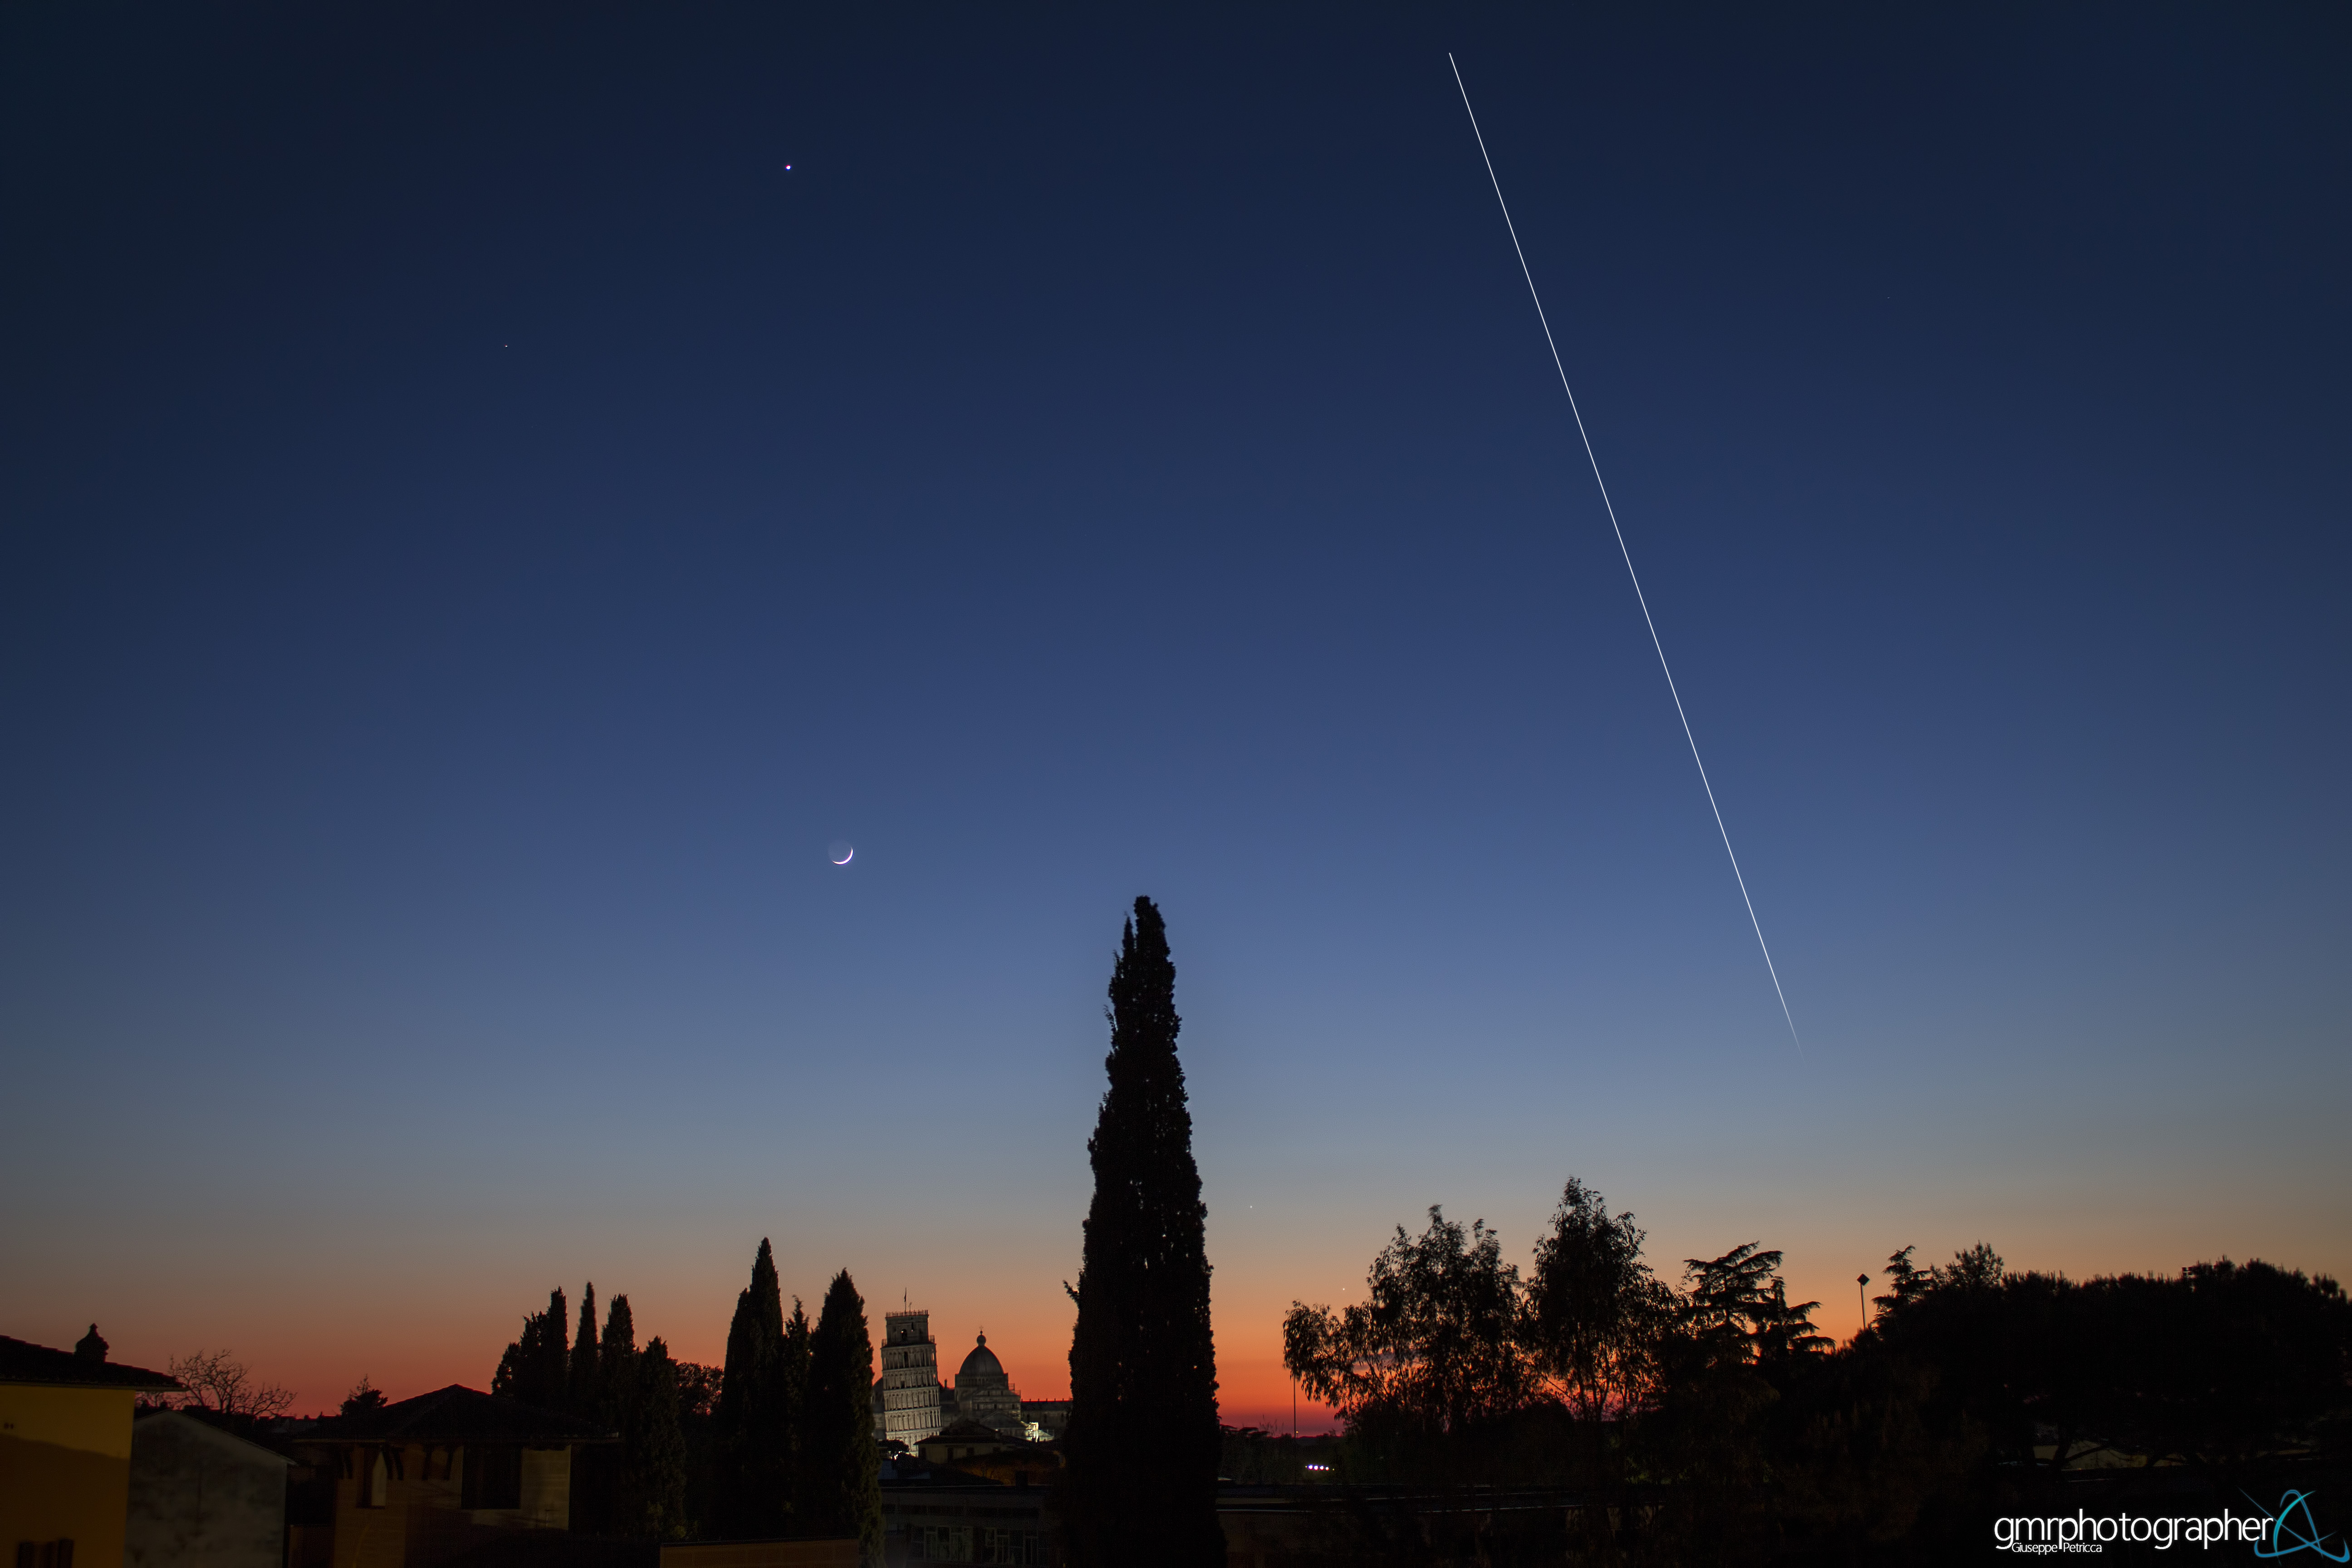 Space Station, Moon and Planets Dance Over Pisa